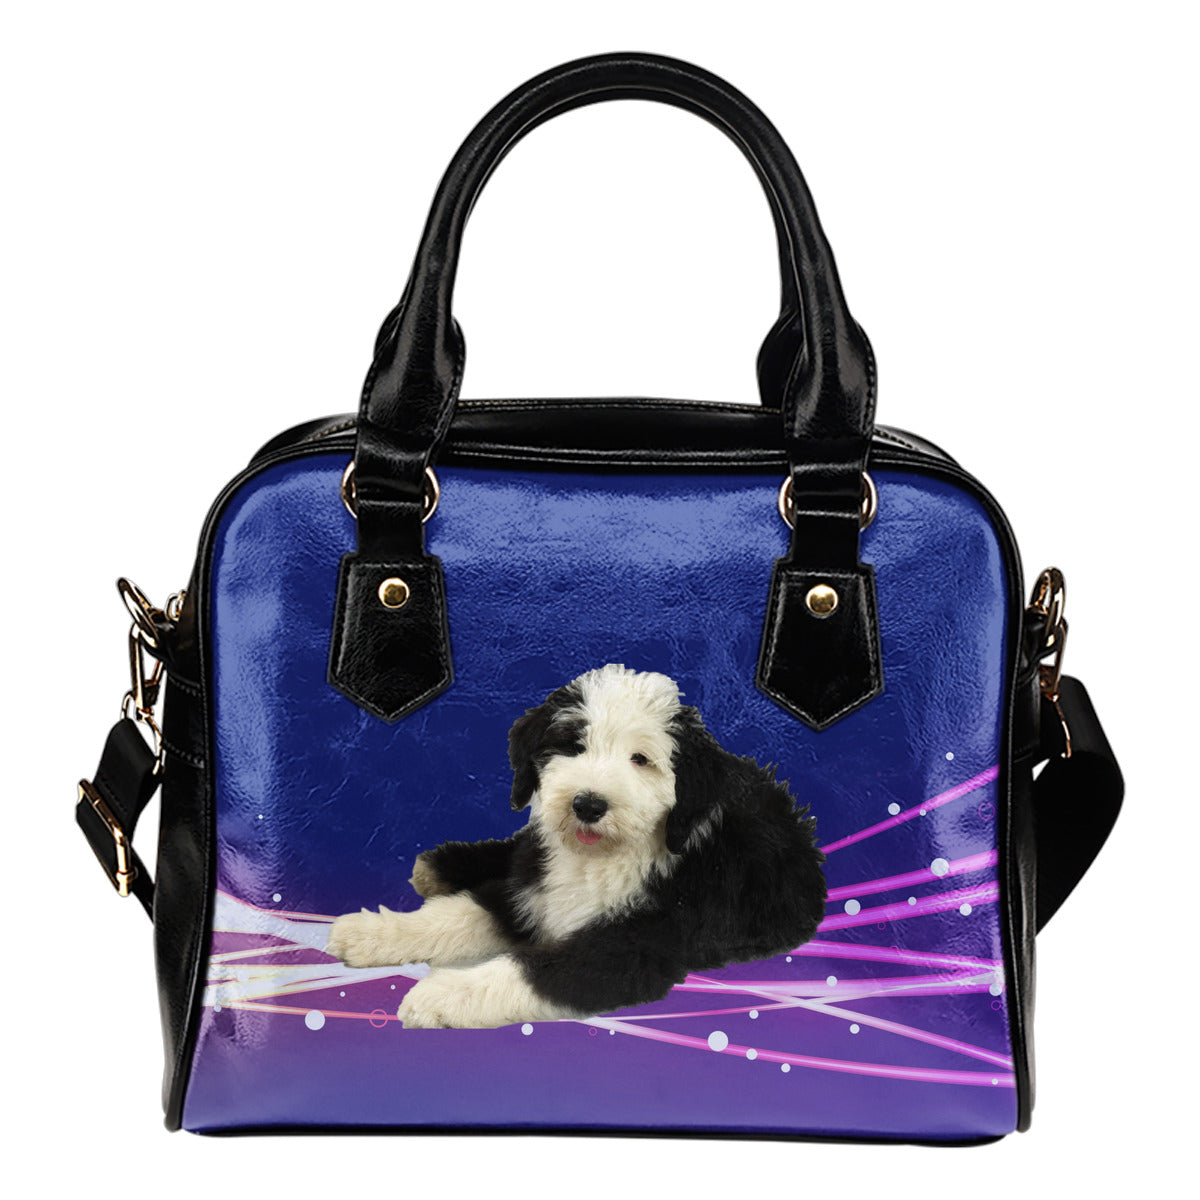 Old English Sheepdog Shoulder Bag